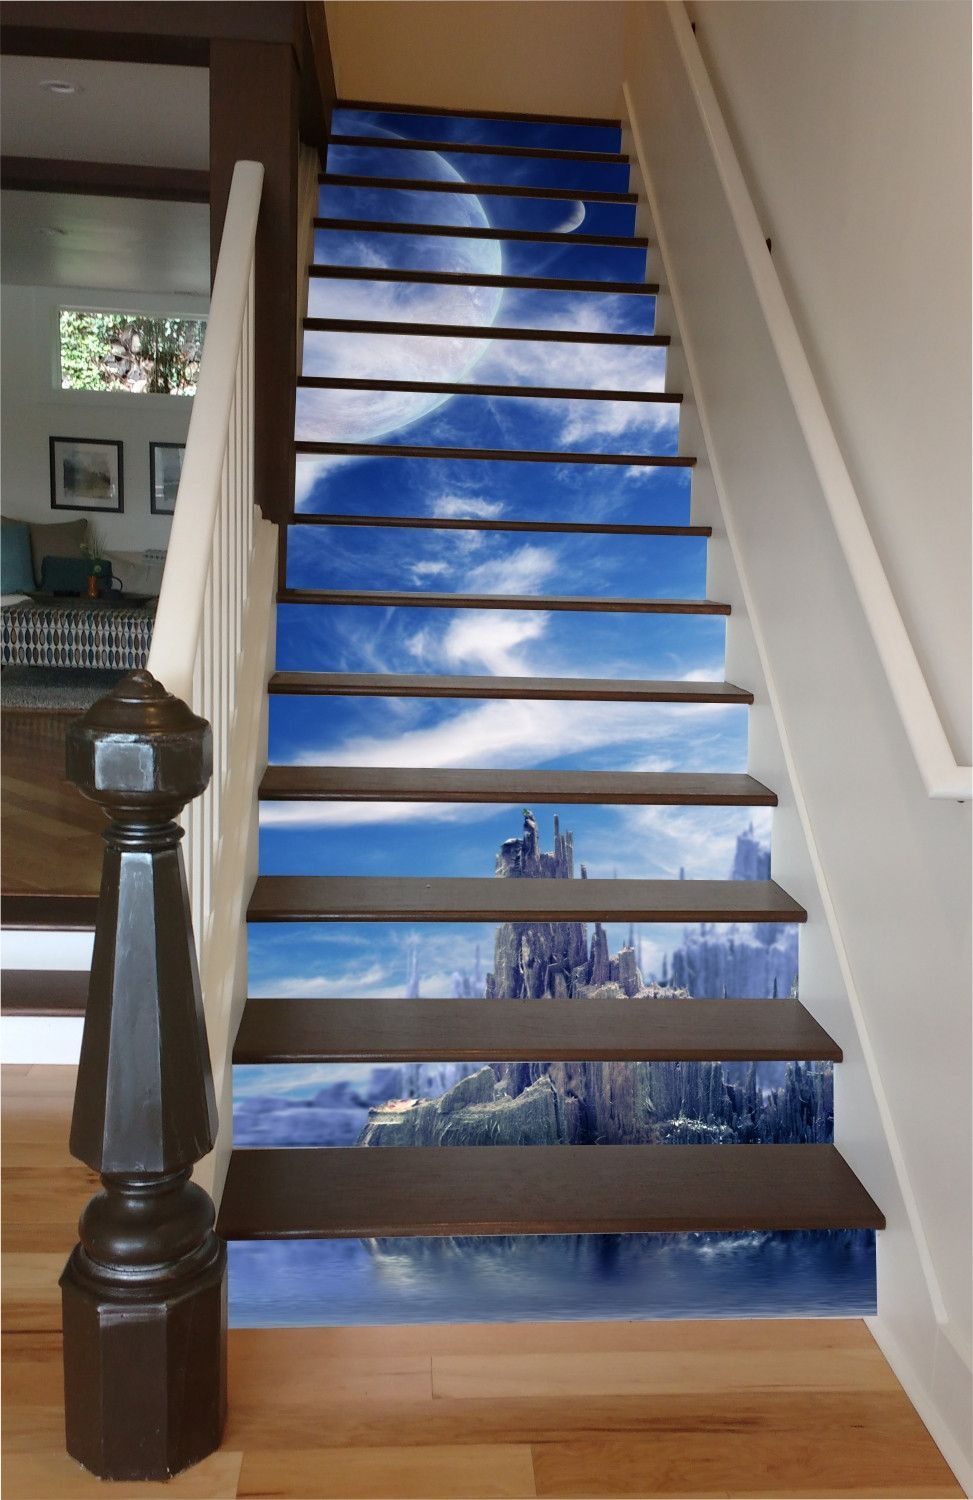 Best Other Worldly 15 Stairs Staircase Design Stairway Art 400 x 300